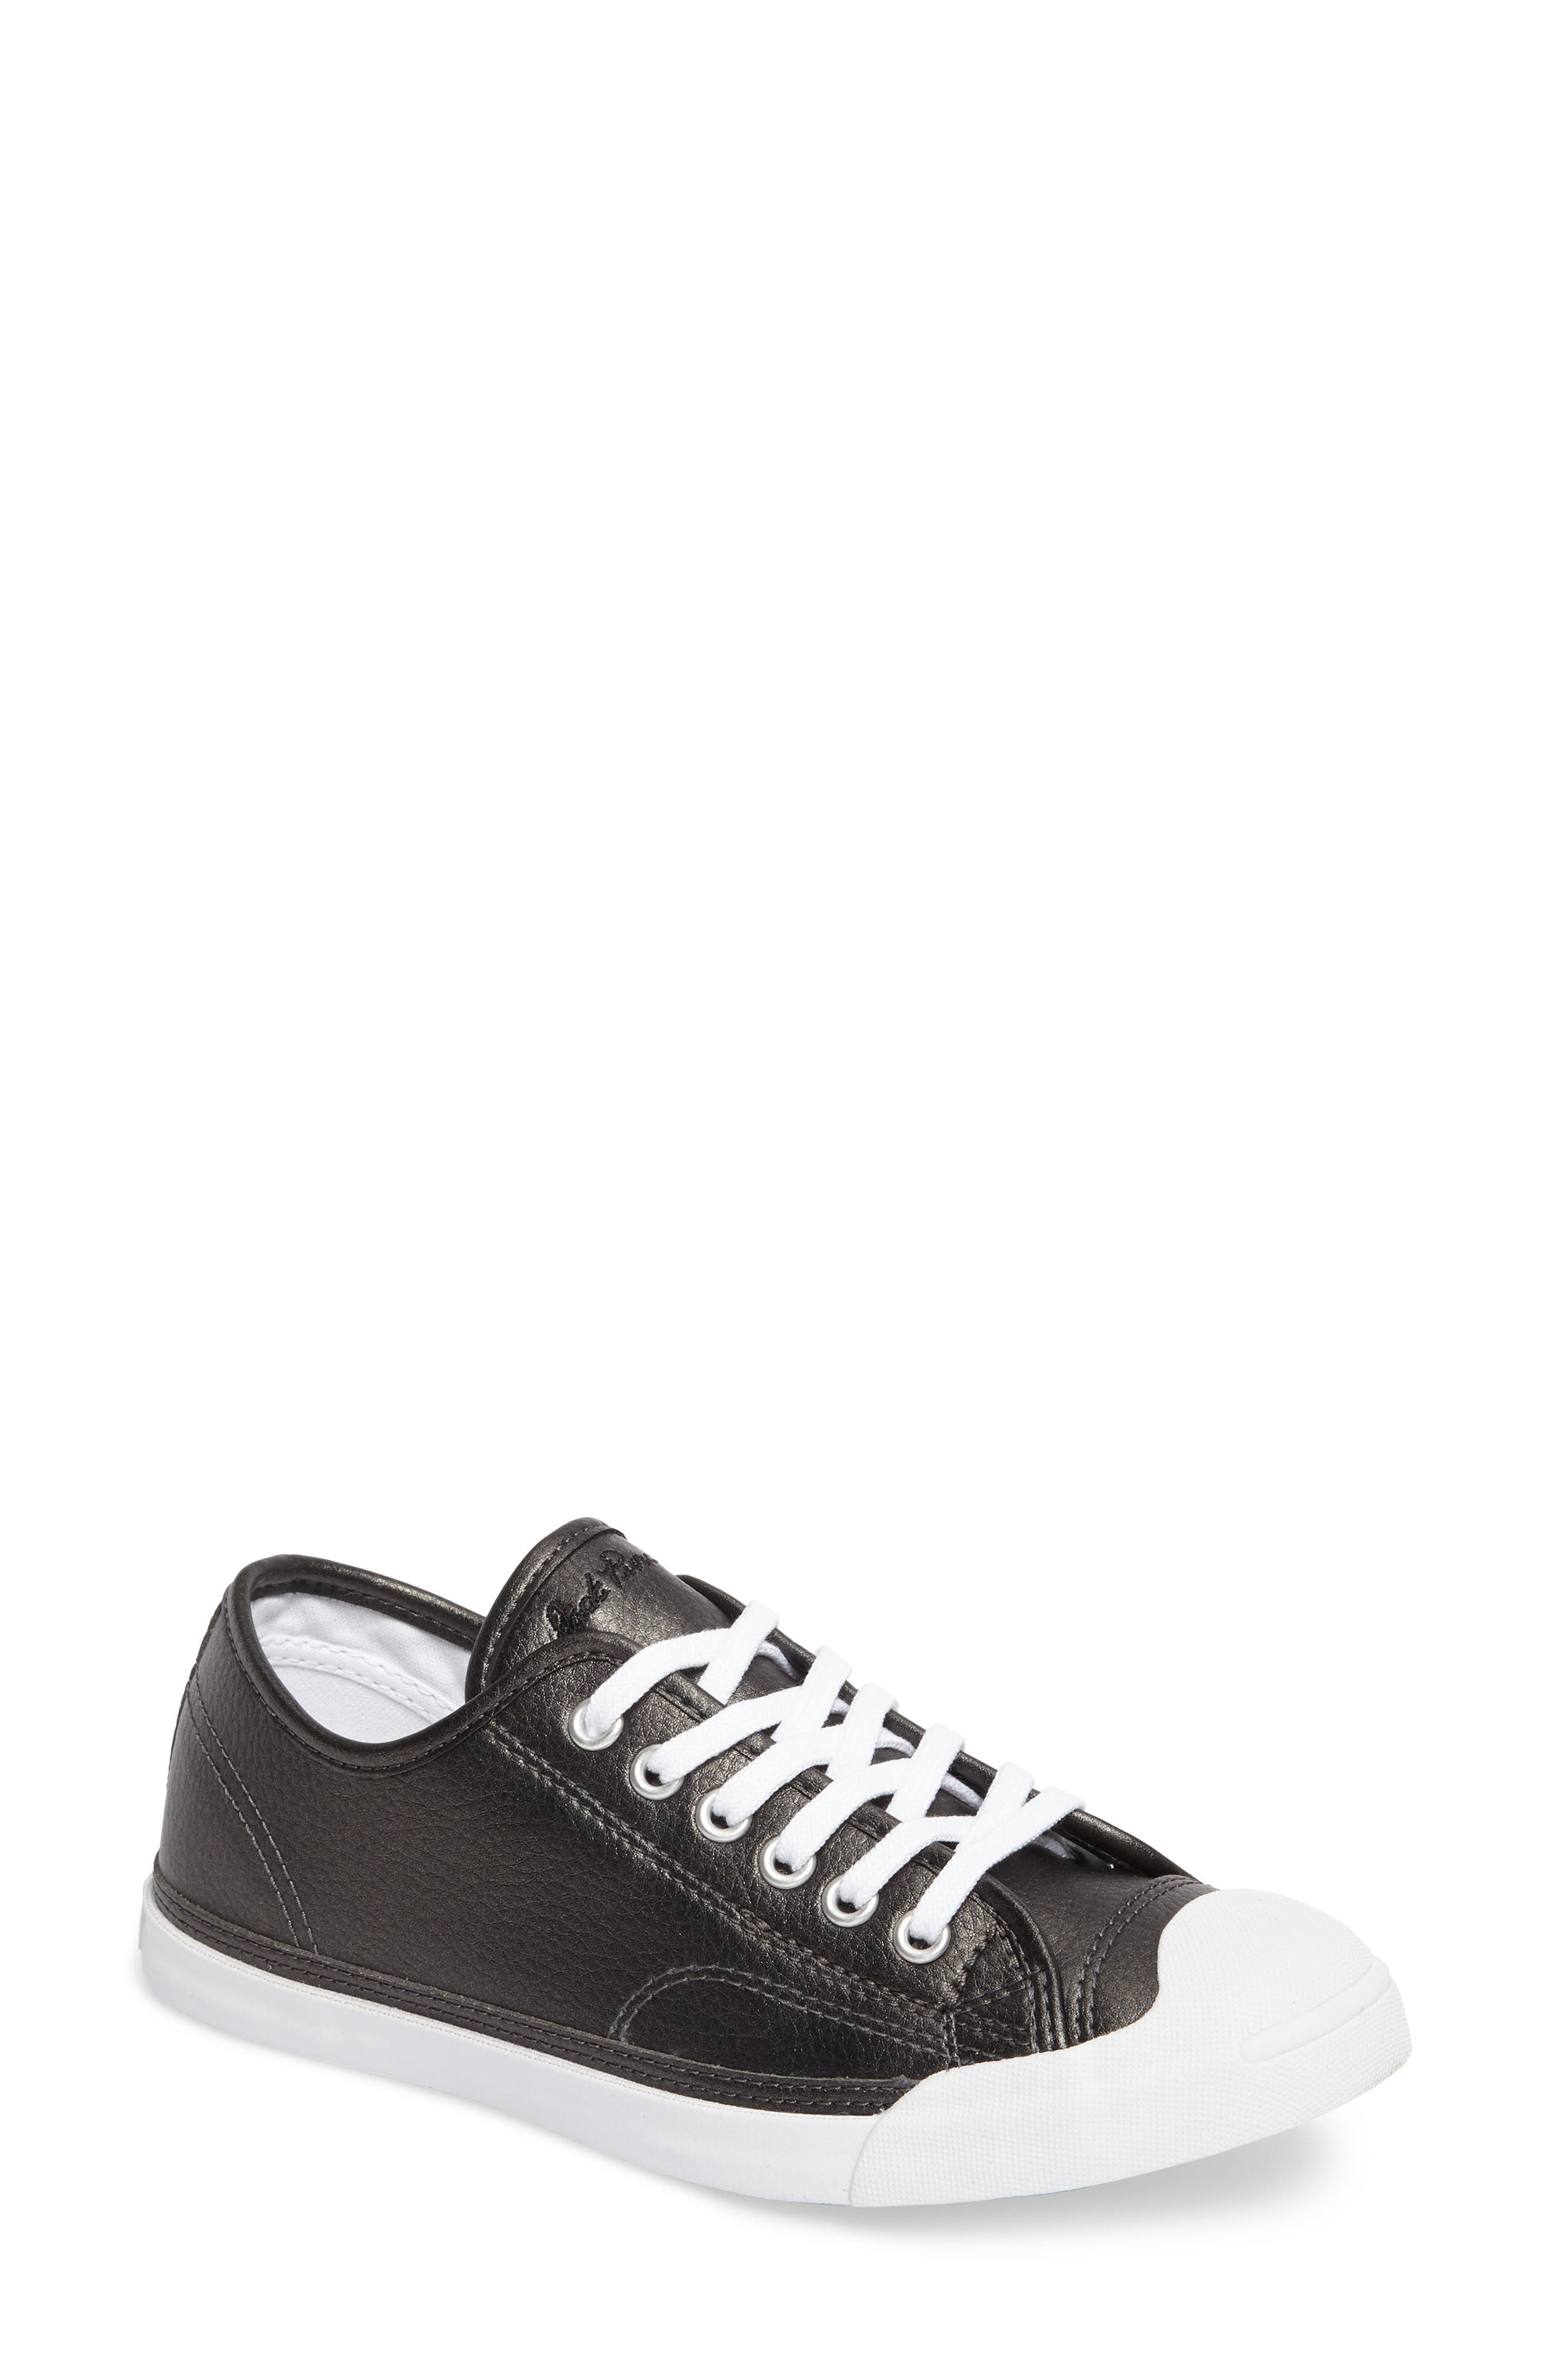 Jack Purcell Low Top Sneaker, Main, color, 001